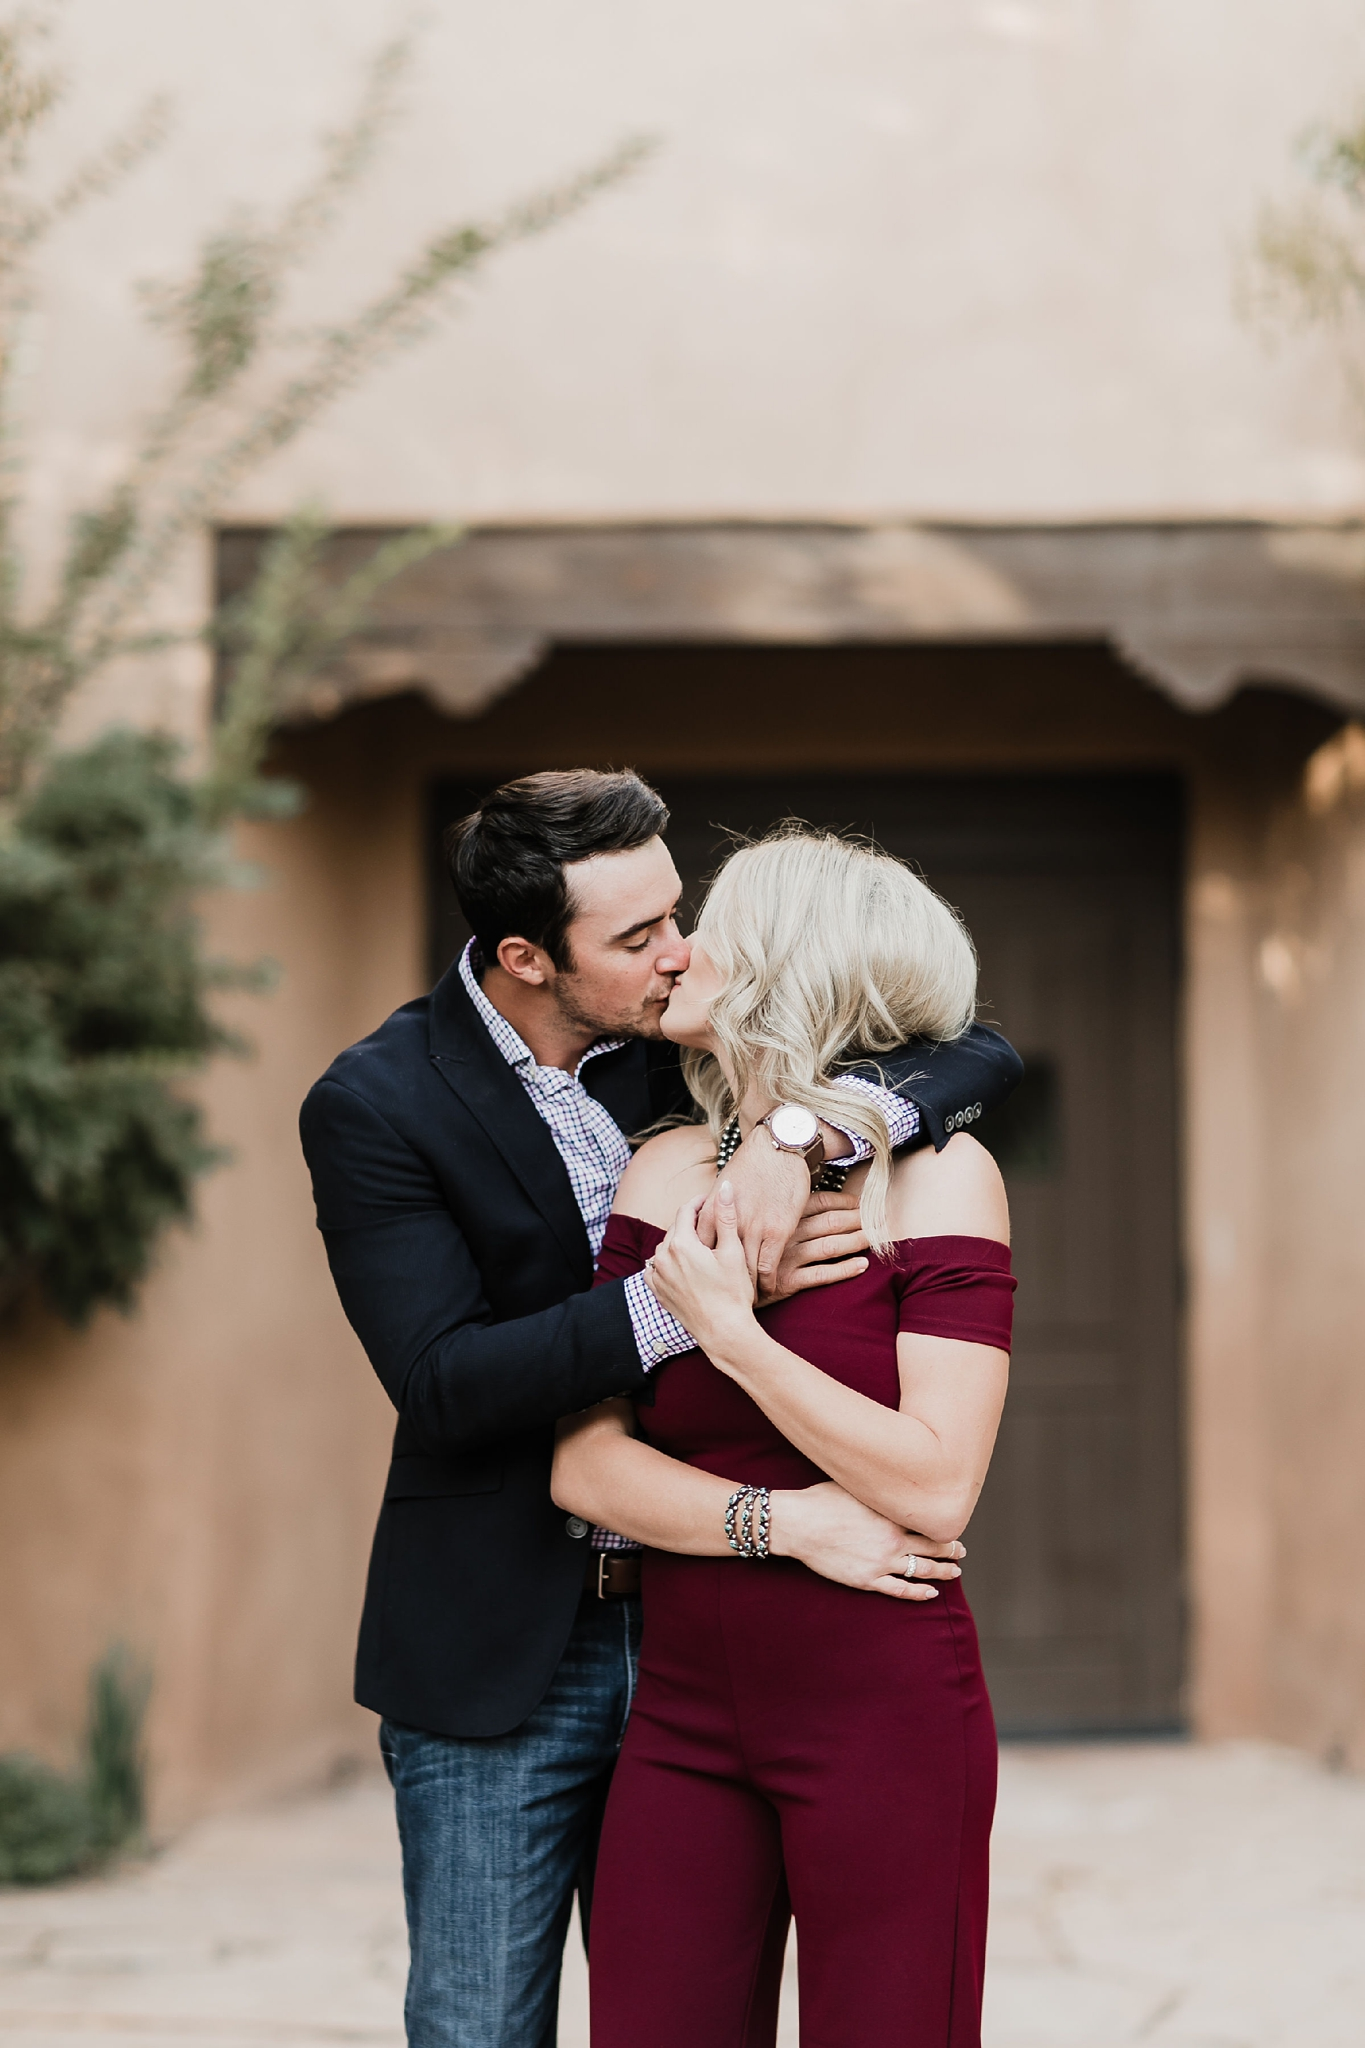 Alicia+lucia+photography+-+albuquerque+wedding+photographer+-+santa+fe+wedding+photography+-+new+mexico+wedding+photographer+-+new+mexico+wedding+-+new+mexico+engagement+-+engagement+style+-+style+lookbook_0019.jpg